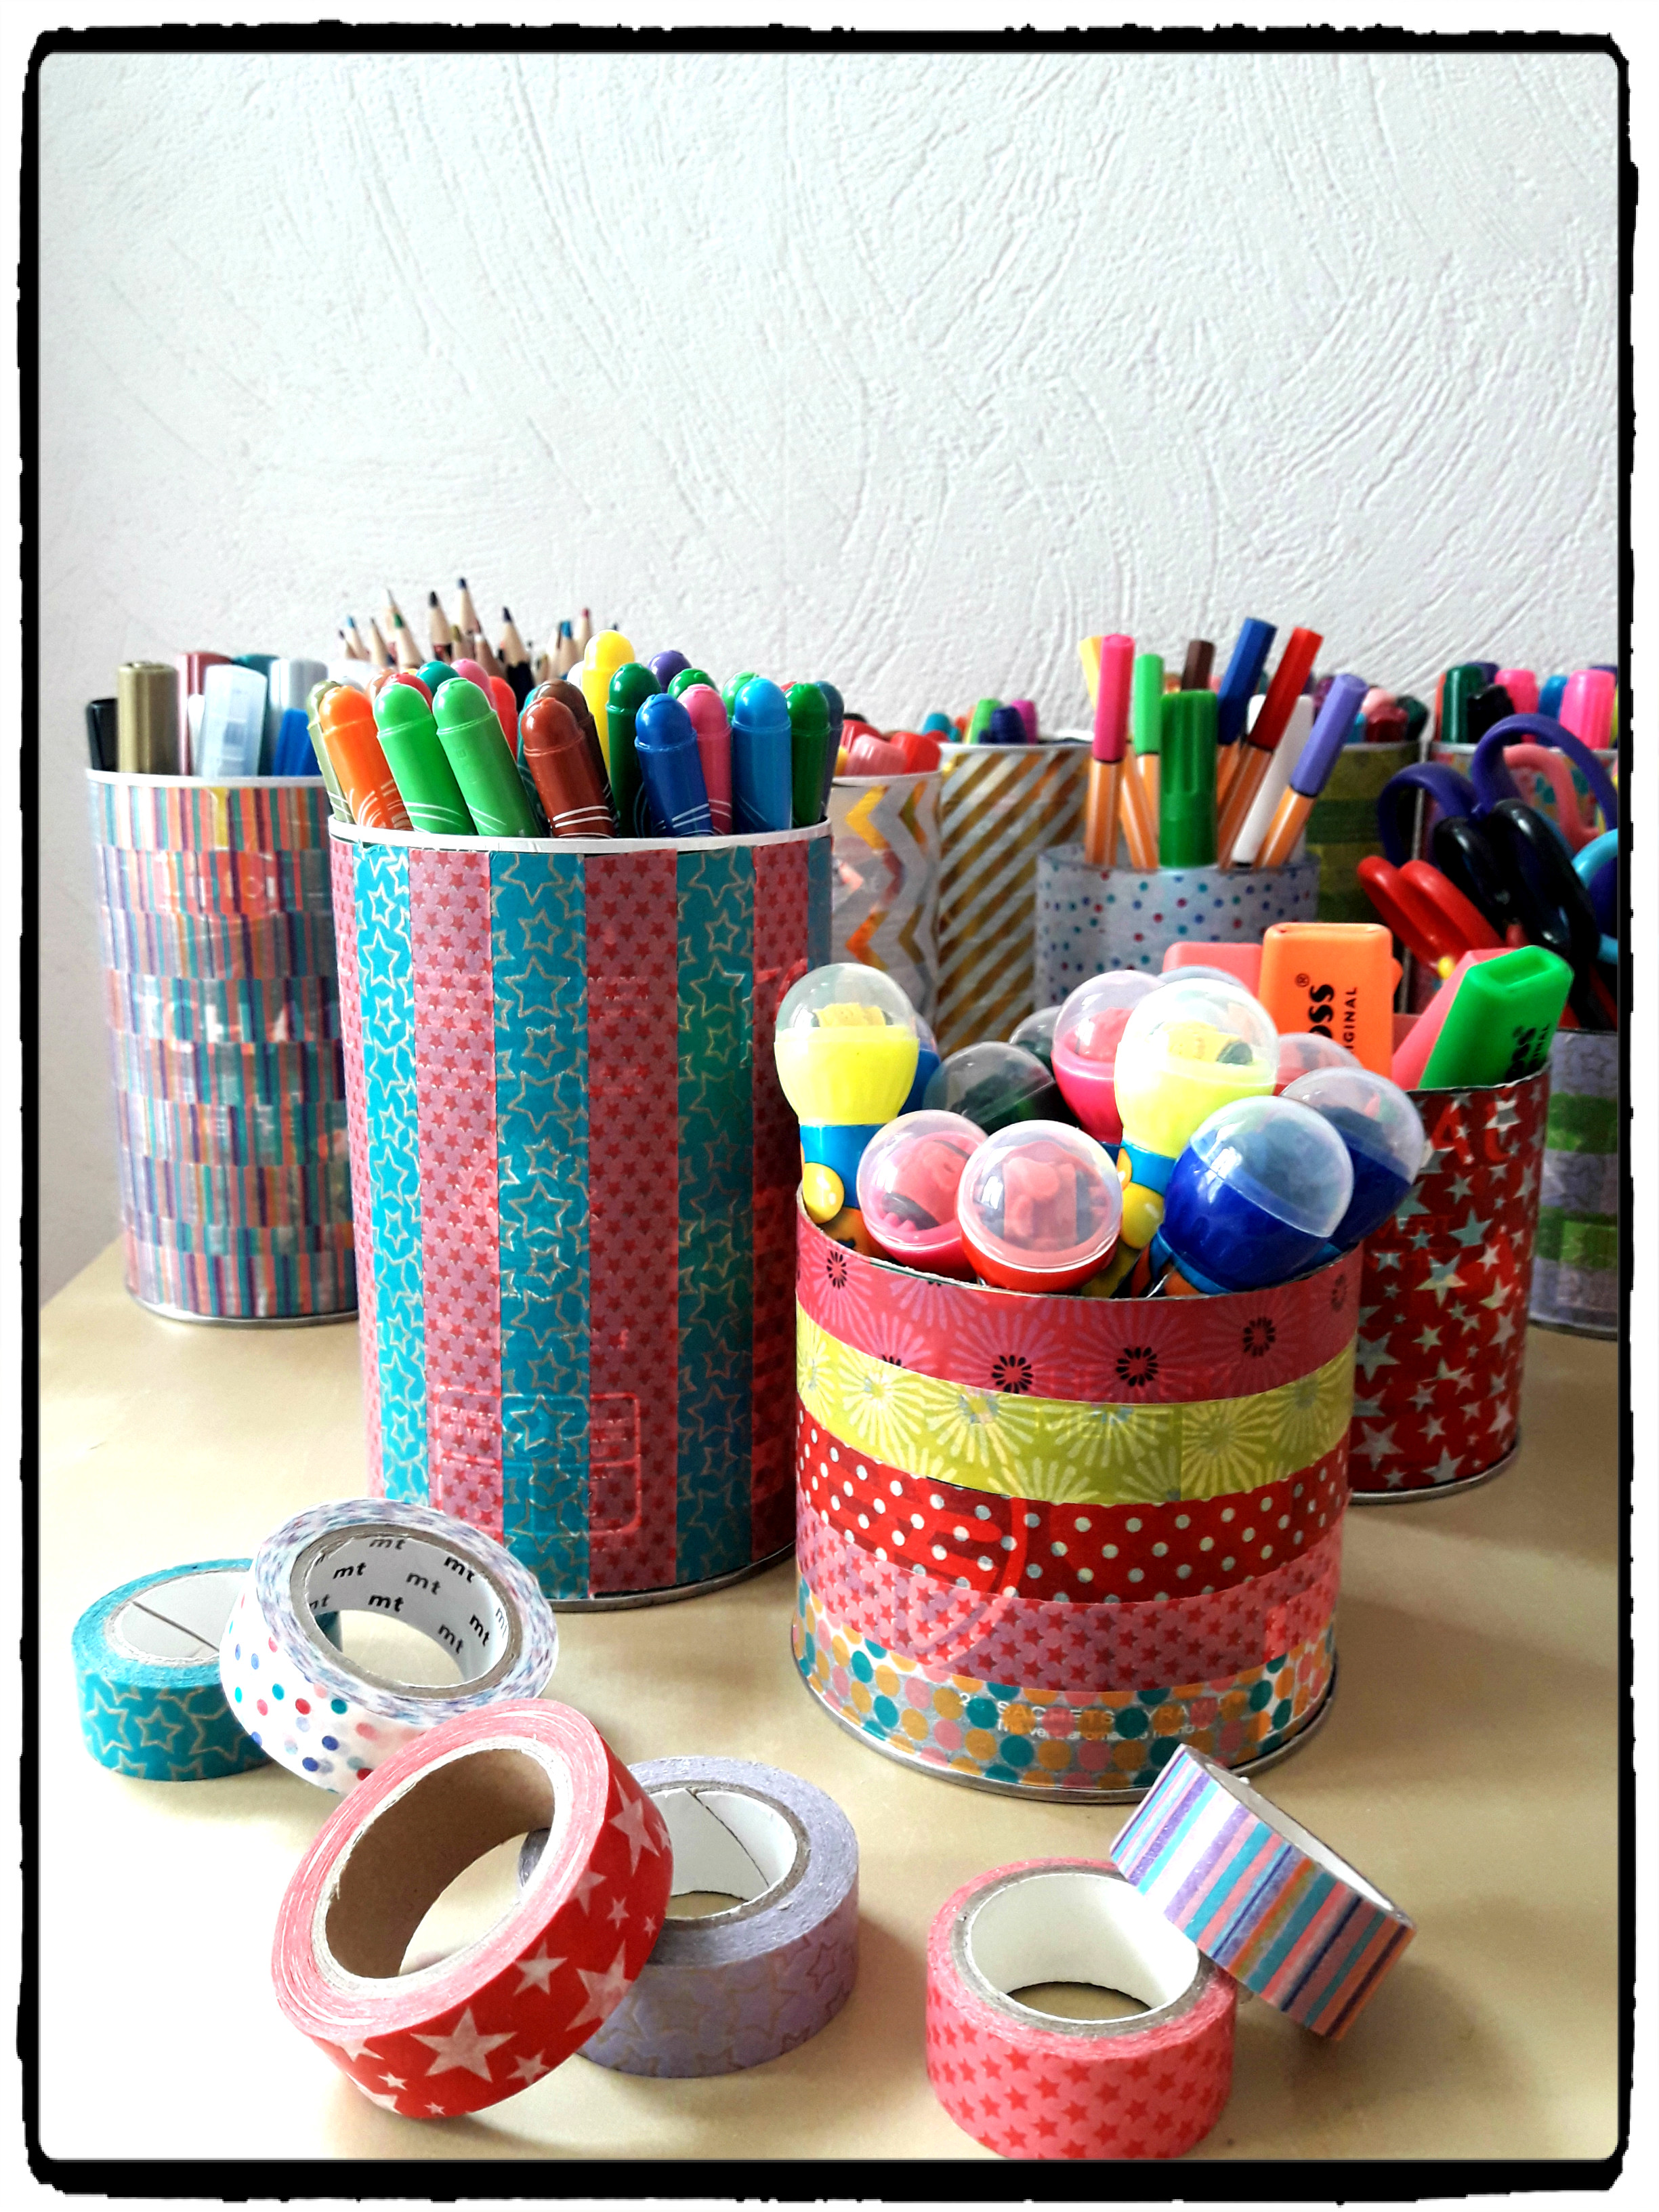 recyclage fabriquer des pots crayons color s mes humeurs cr atives. Black Bedroom Furniture Sets. Home Design Ideas